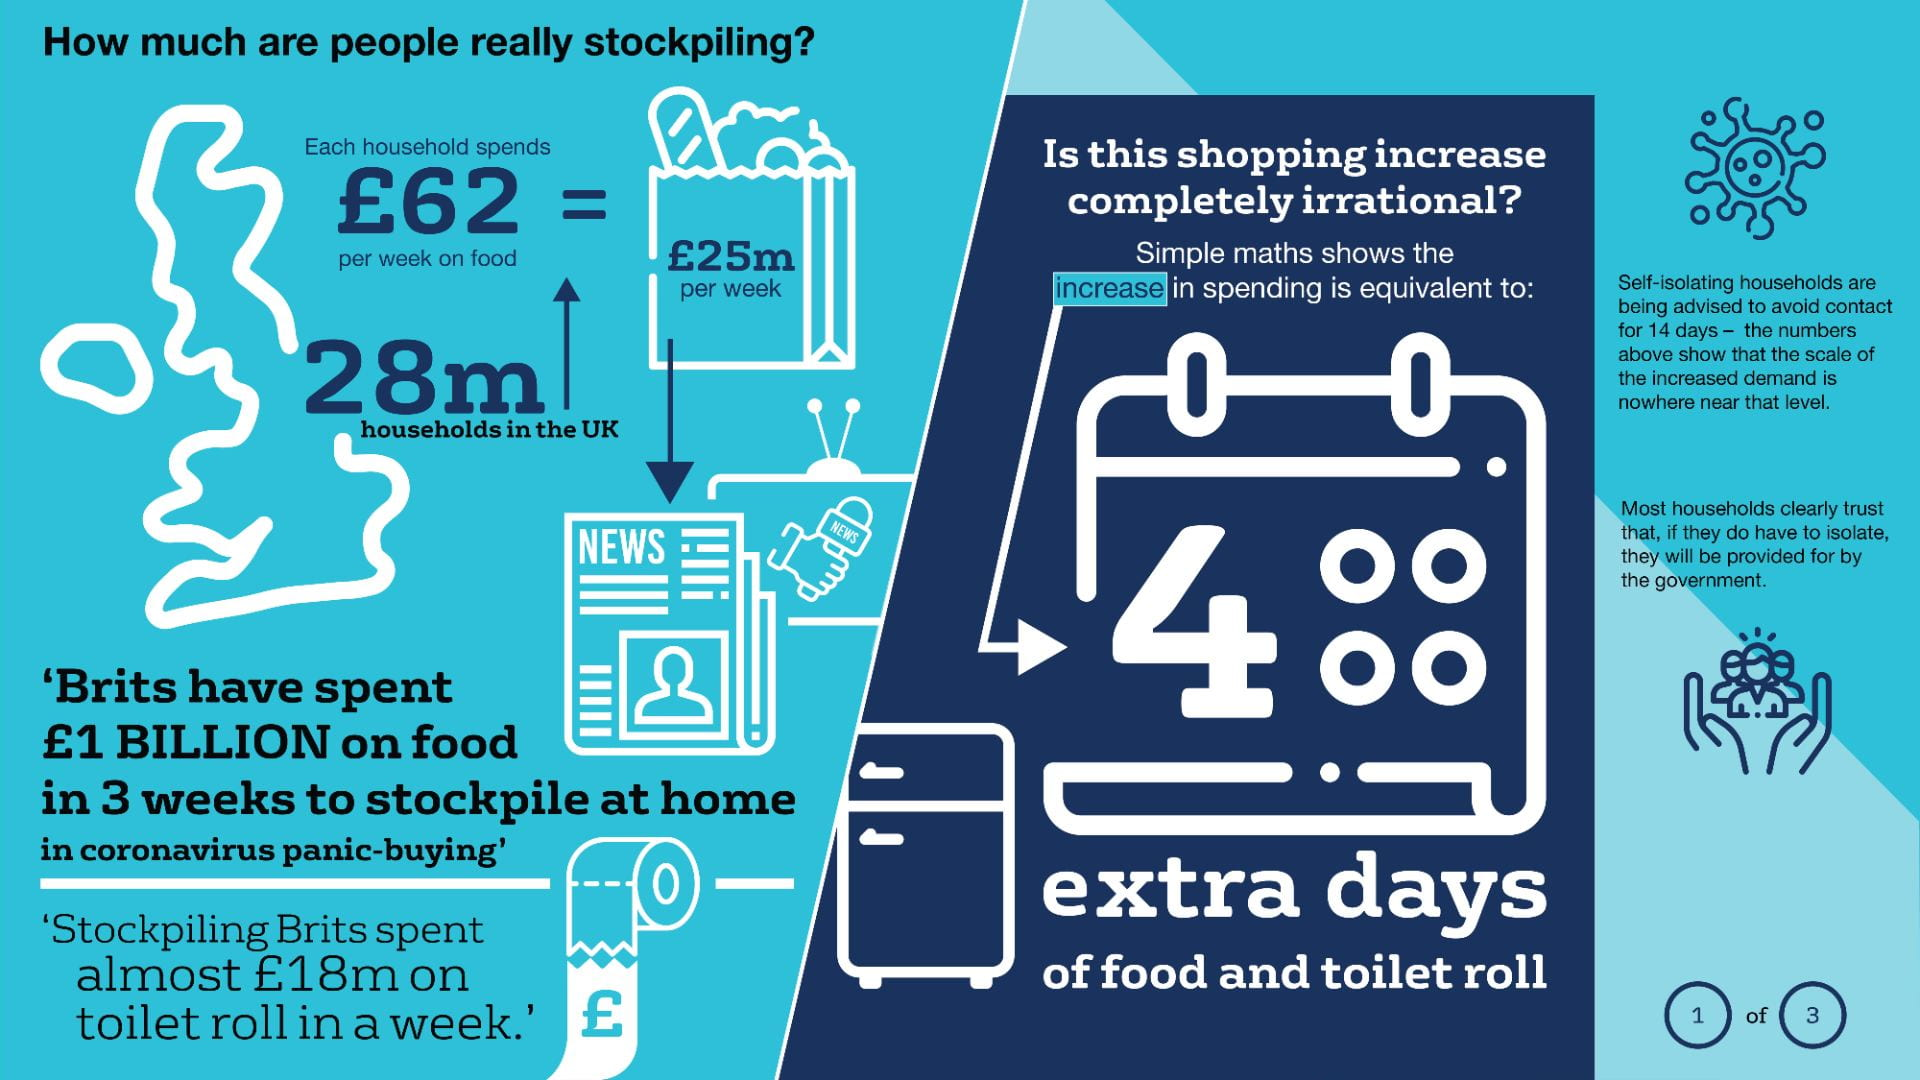 How much are people really stockpiling?